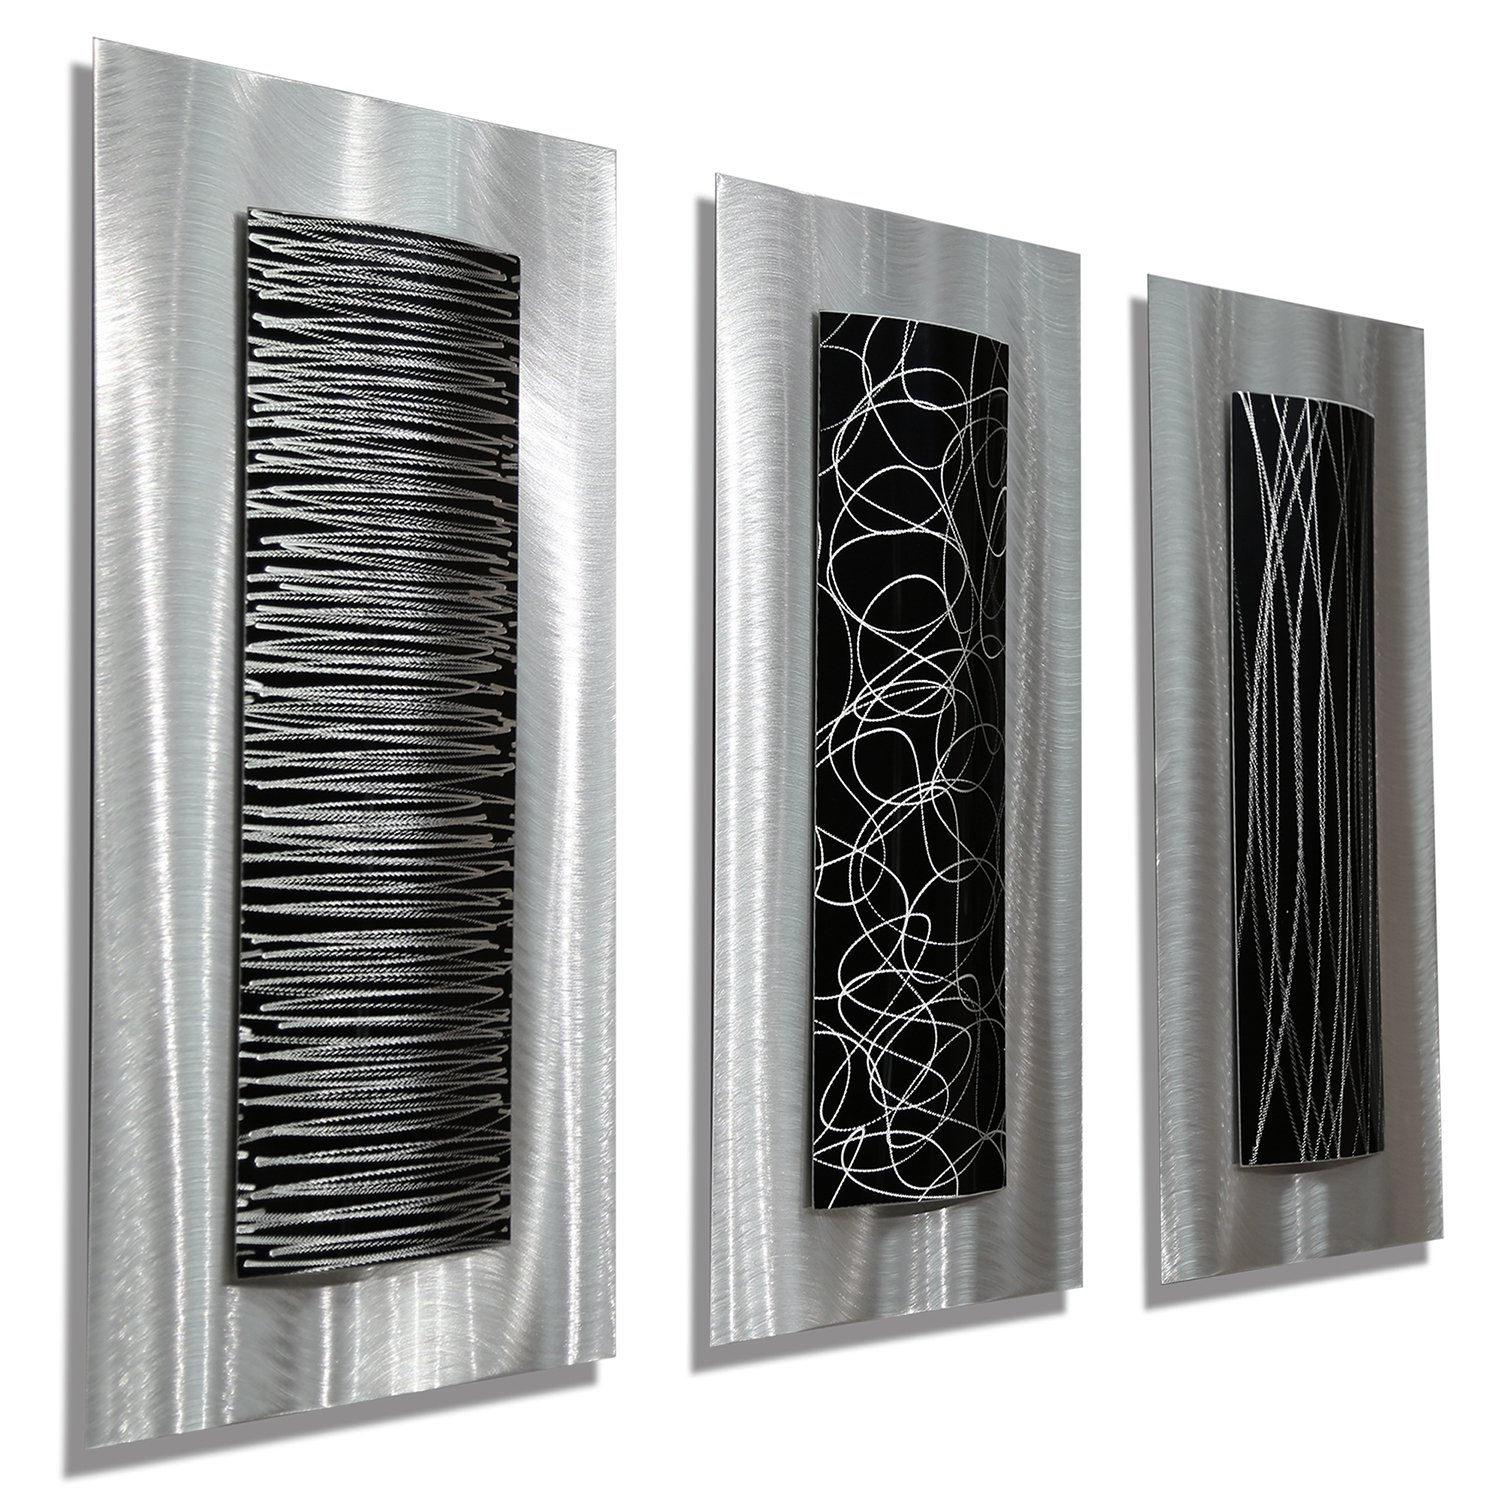 Modern Bathroom Wall Decor Abstract Metal Wall Art Panels Beautiful And Elegant